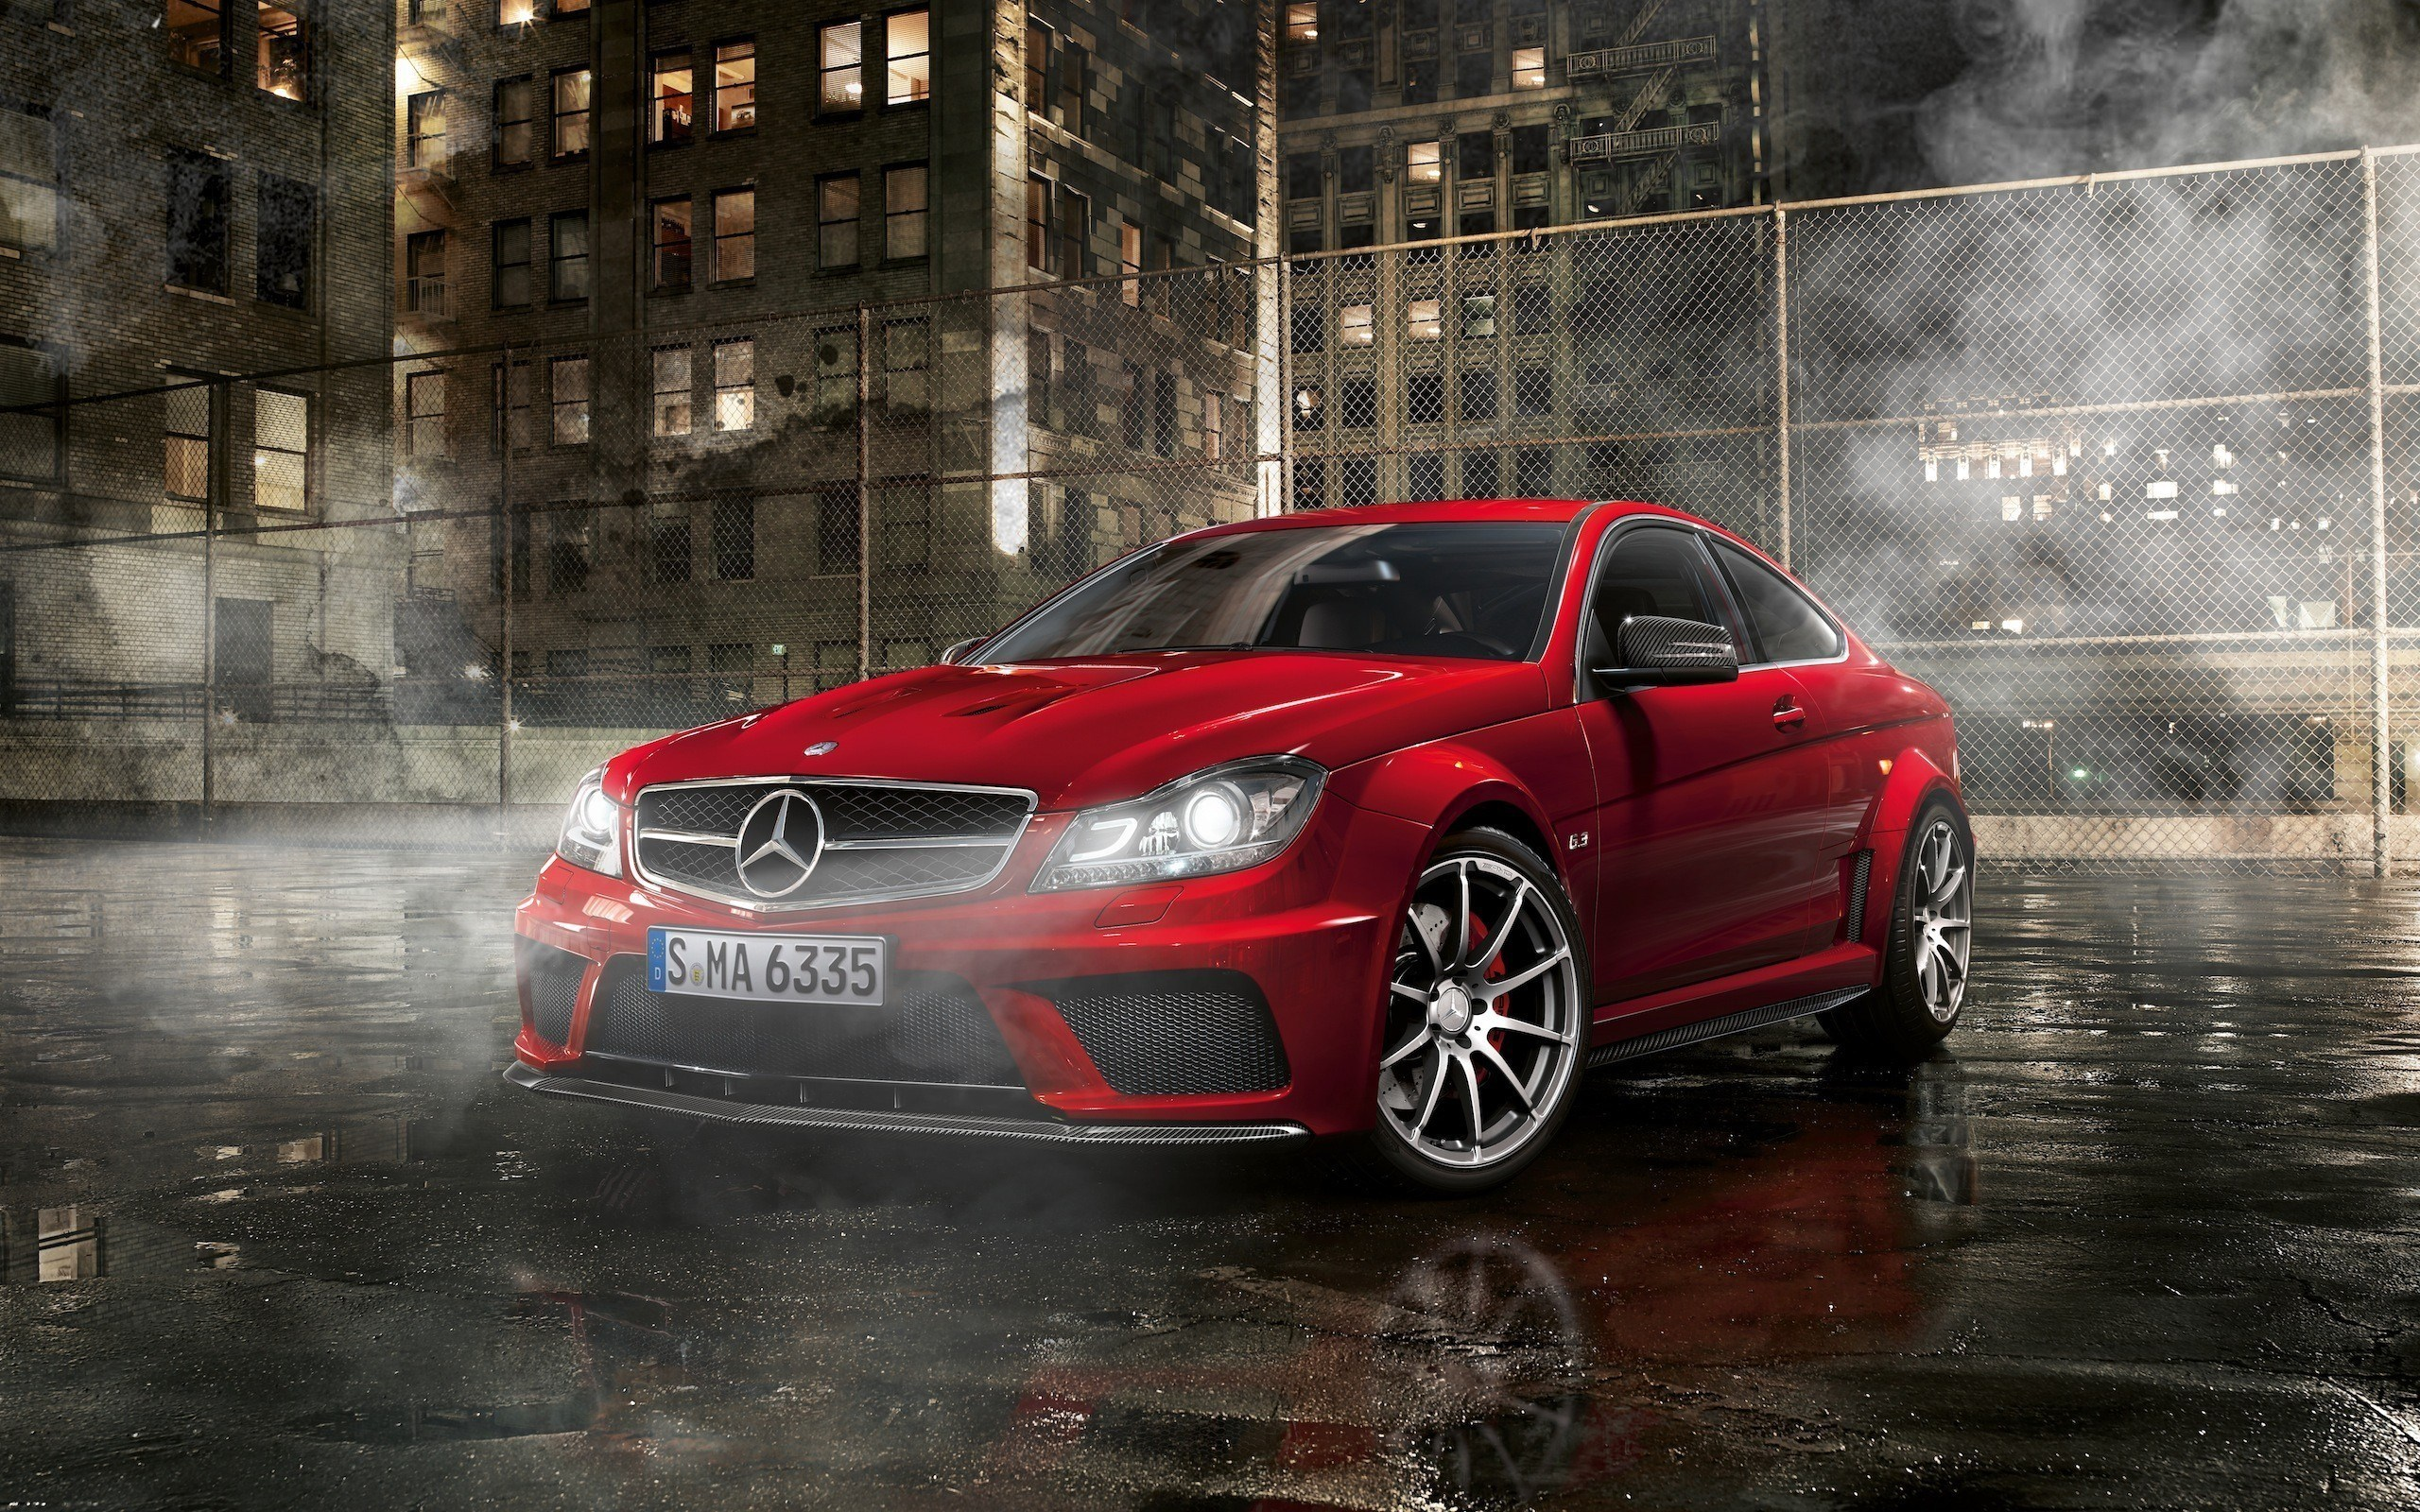 Mercedes-Benz C63 AMG Night Street Parking